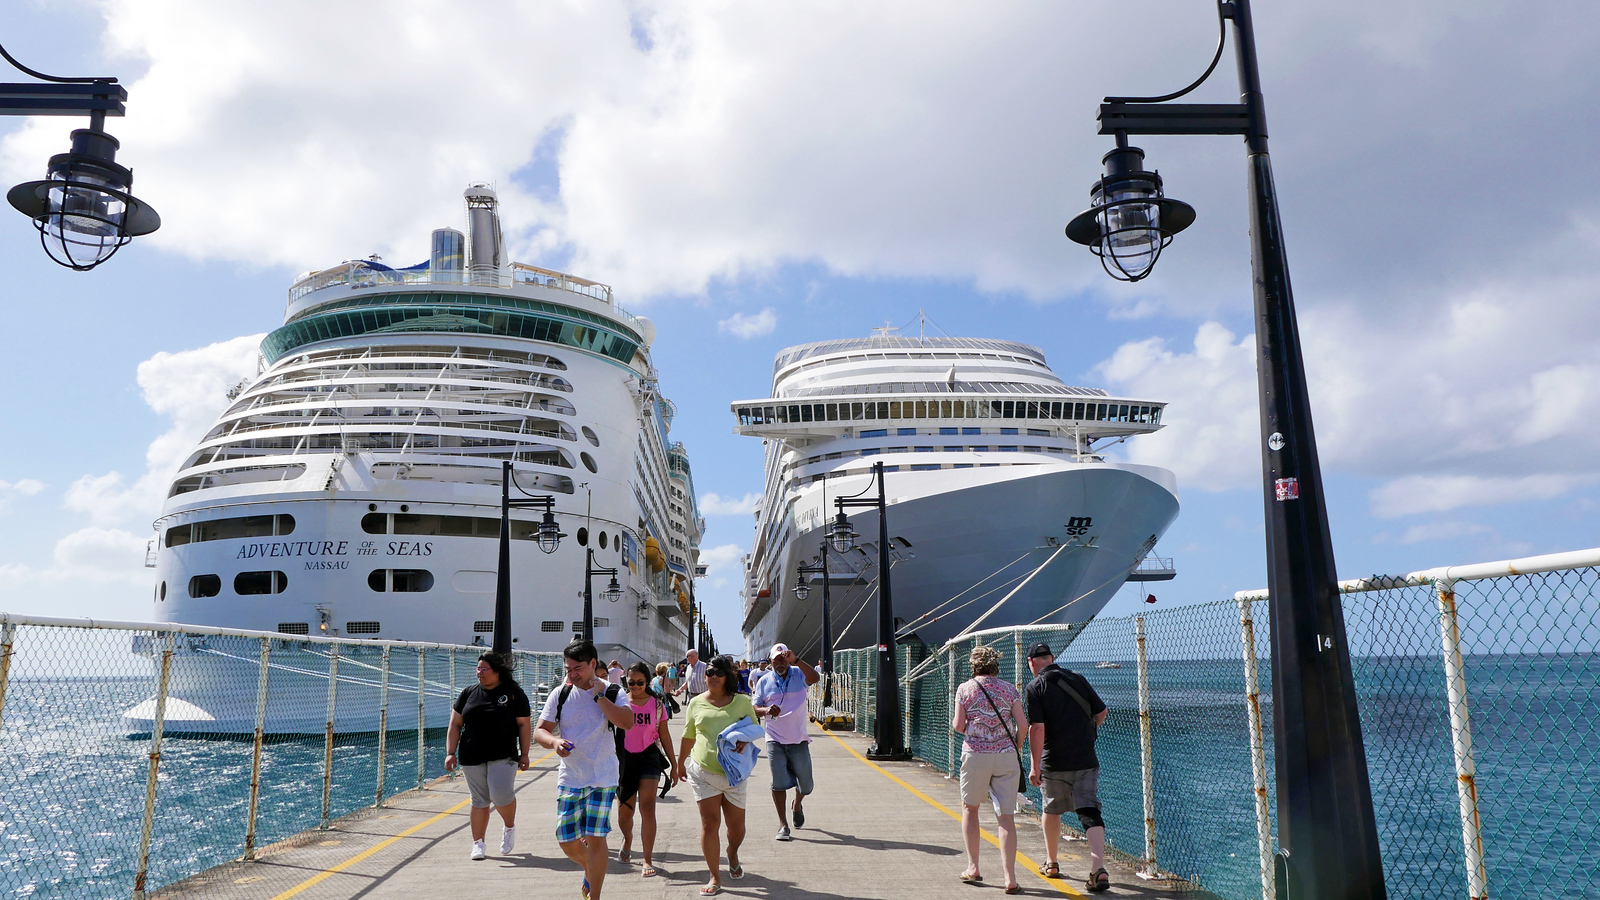 St Kitts Cruise Port Guide - Spending a Day in St Kitts